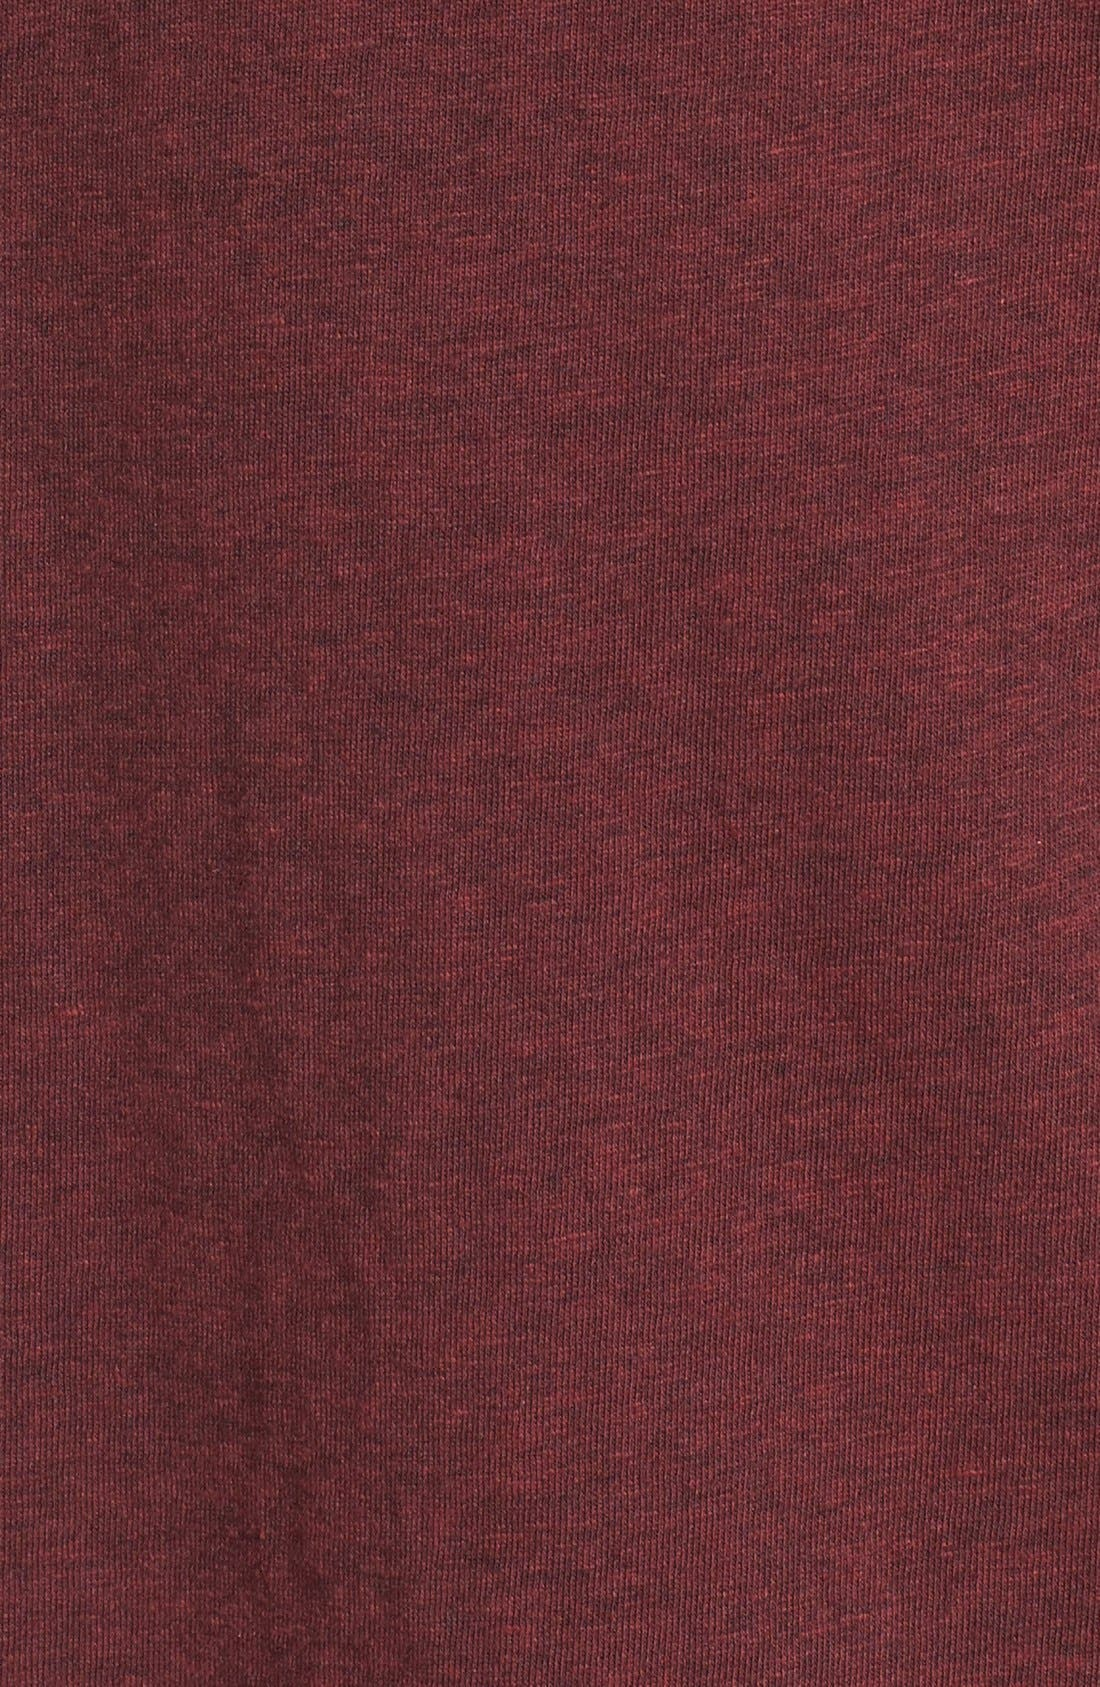 Recycled Cotton Blend T-Shirt,                             Alternate thumbnail 15, color,